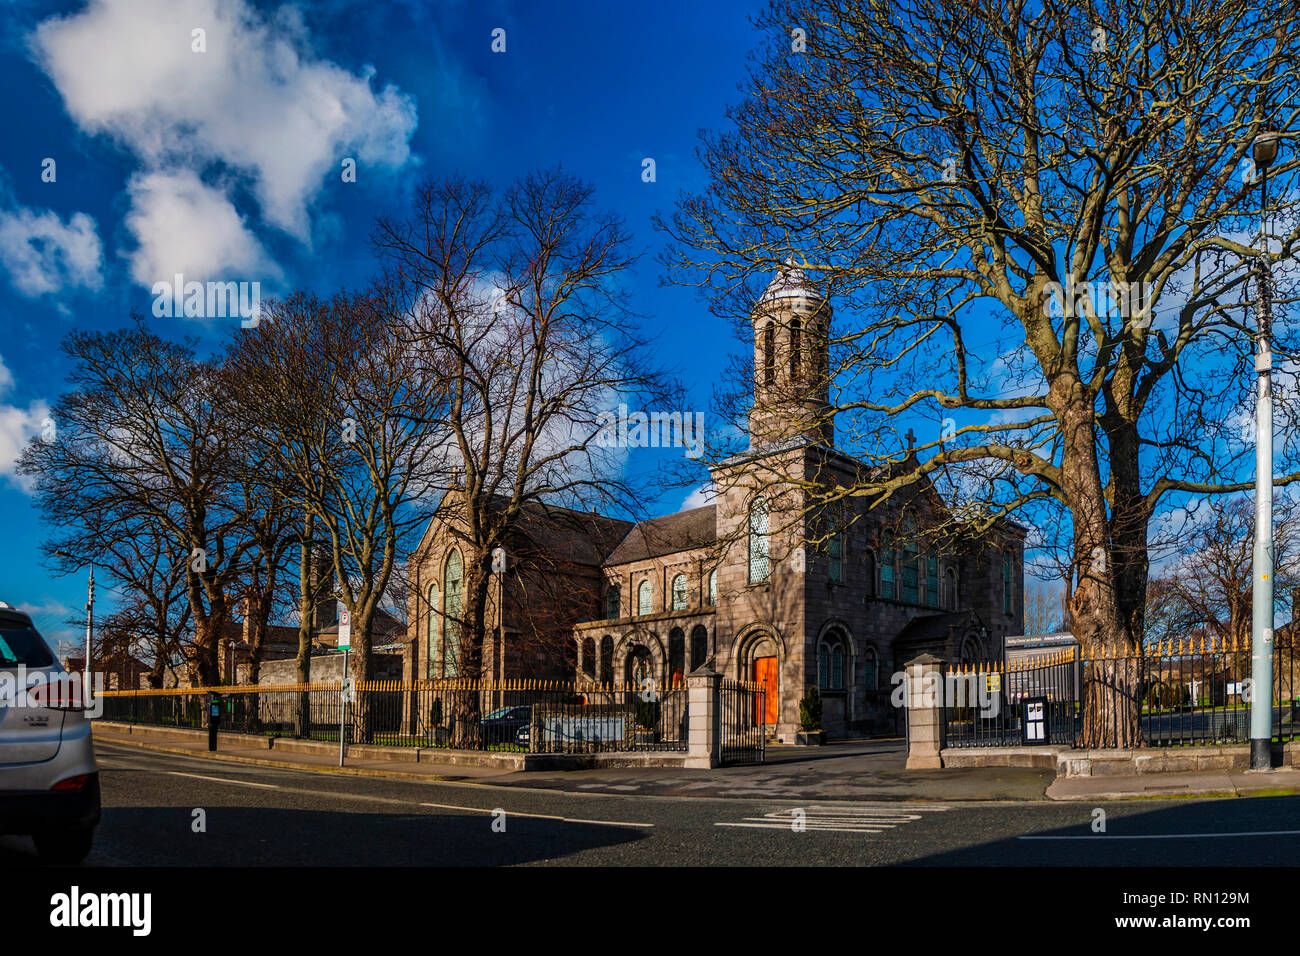 Church of the Defence Forces or The Church of the Sacred Heart, Arbour Hill, Dublin. - Stock Image